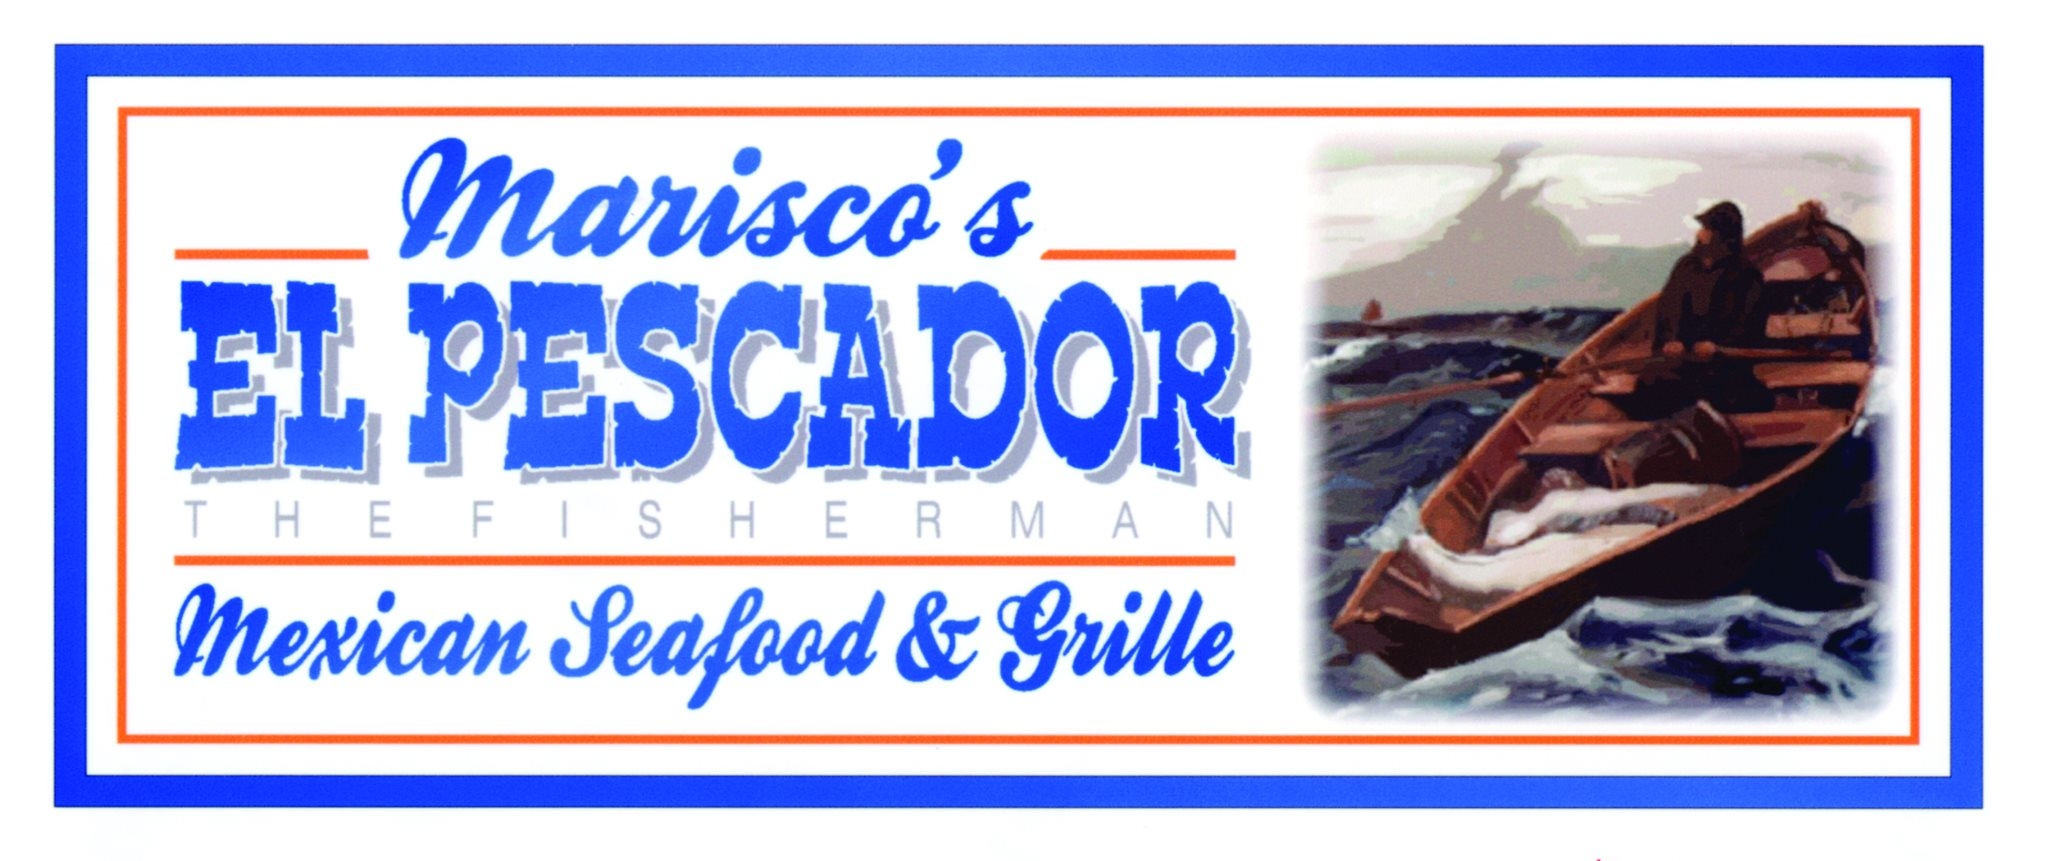 EL PESCADOR MEXICAN FOOD - RENO, NV - Restaurants